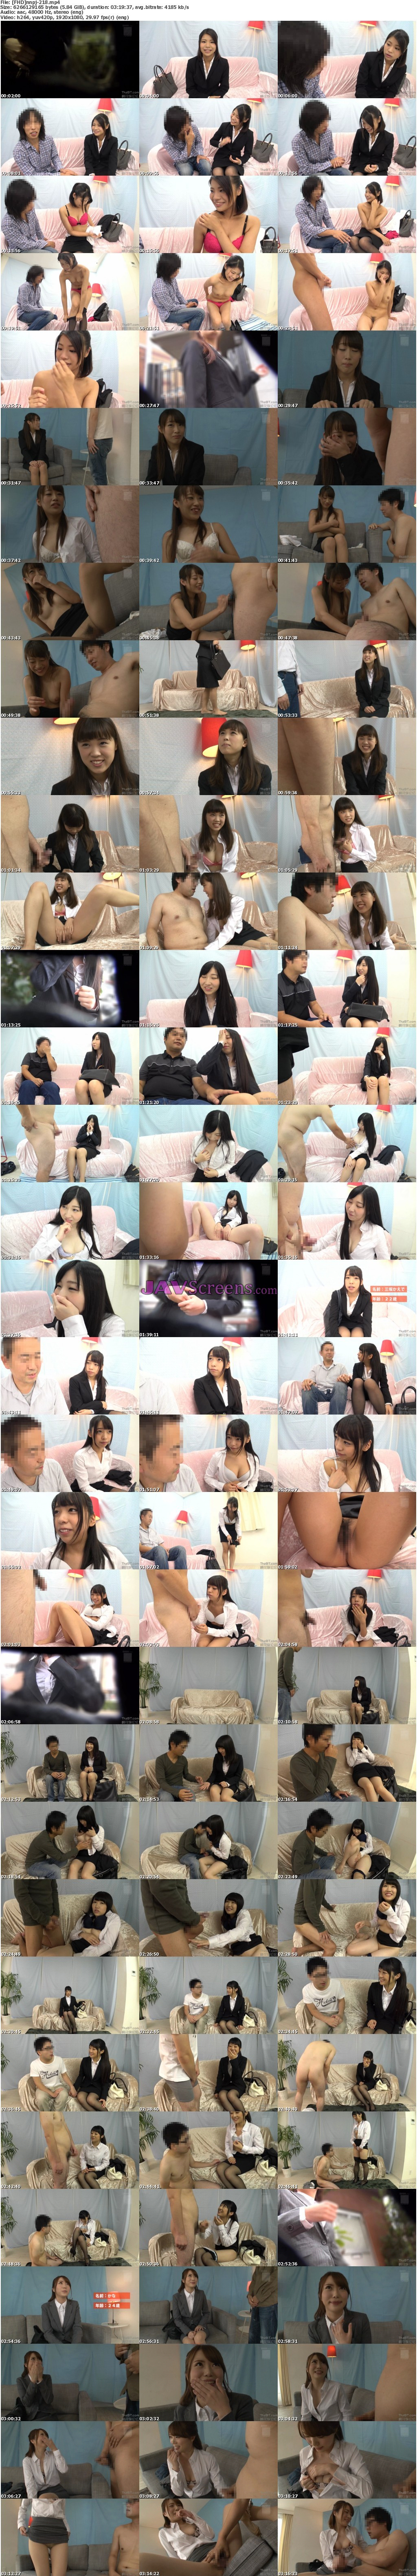 NNPJ-218.jpg - JAV Screenshot